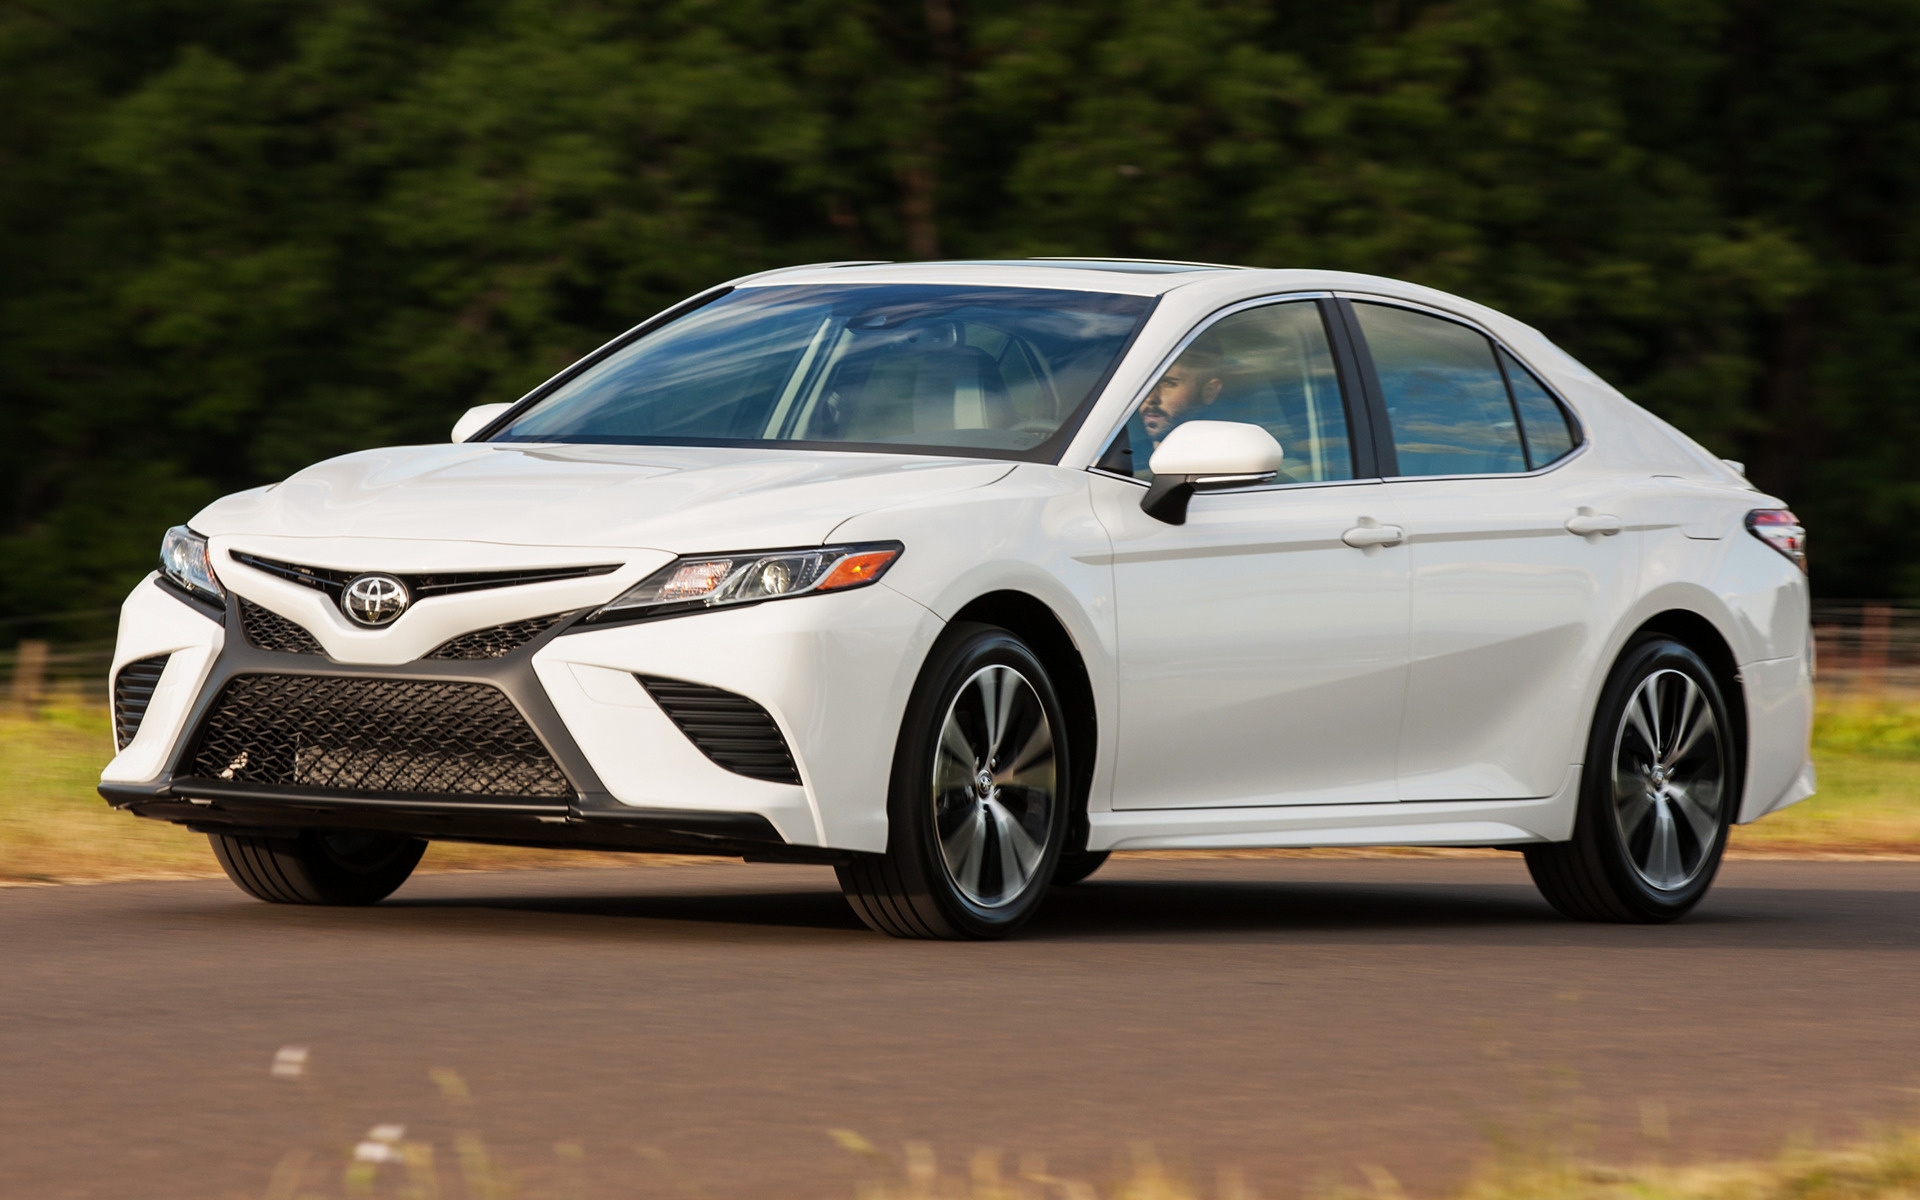 Camry Le Vs Se >> 2018 Toyota Camry SE - Wallpapers and HD Images | Car Pixel